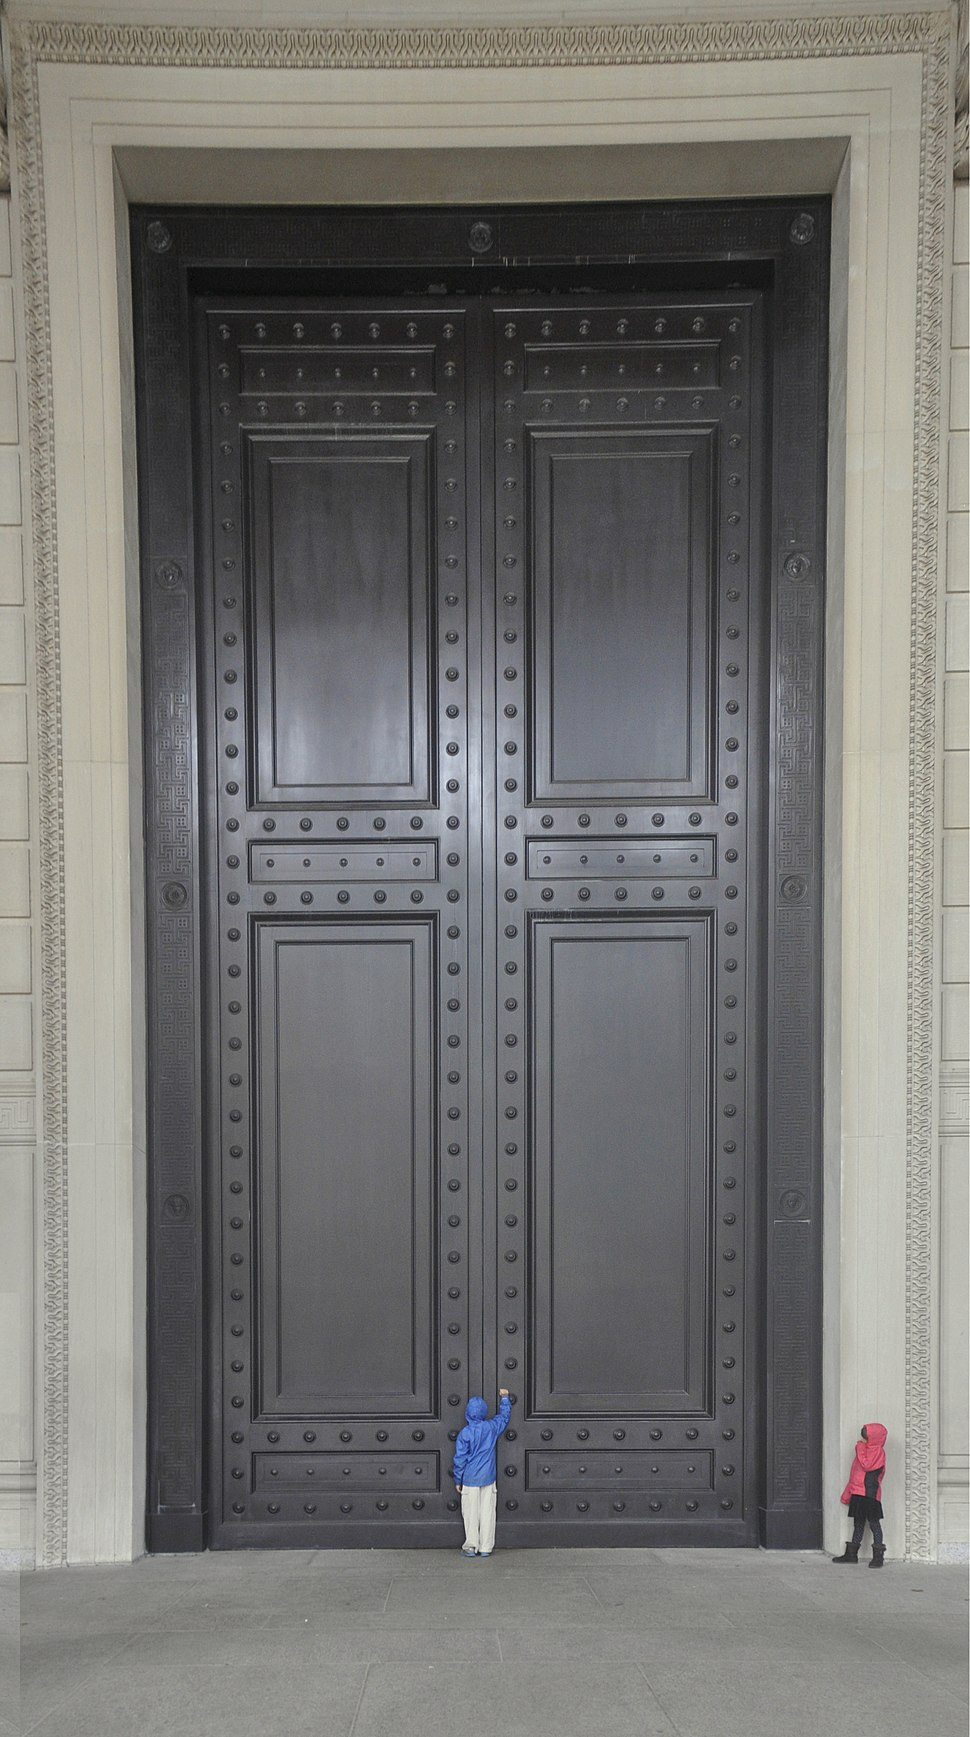 Knocking at front door of The National Archives Building - 01